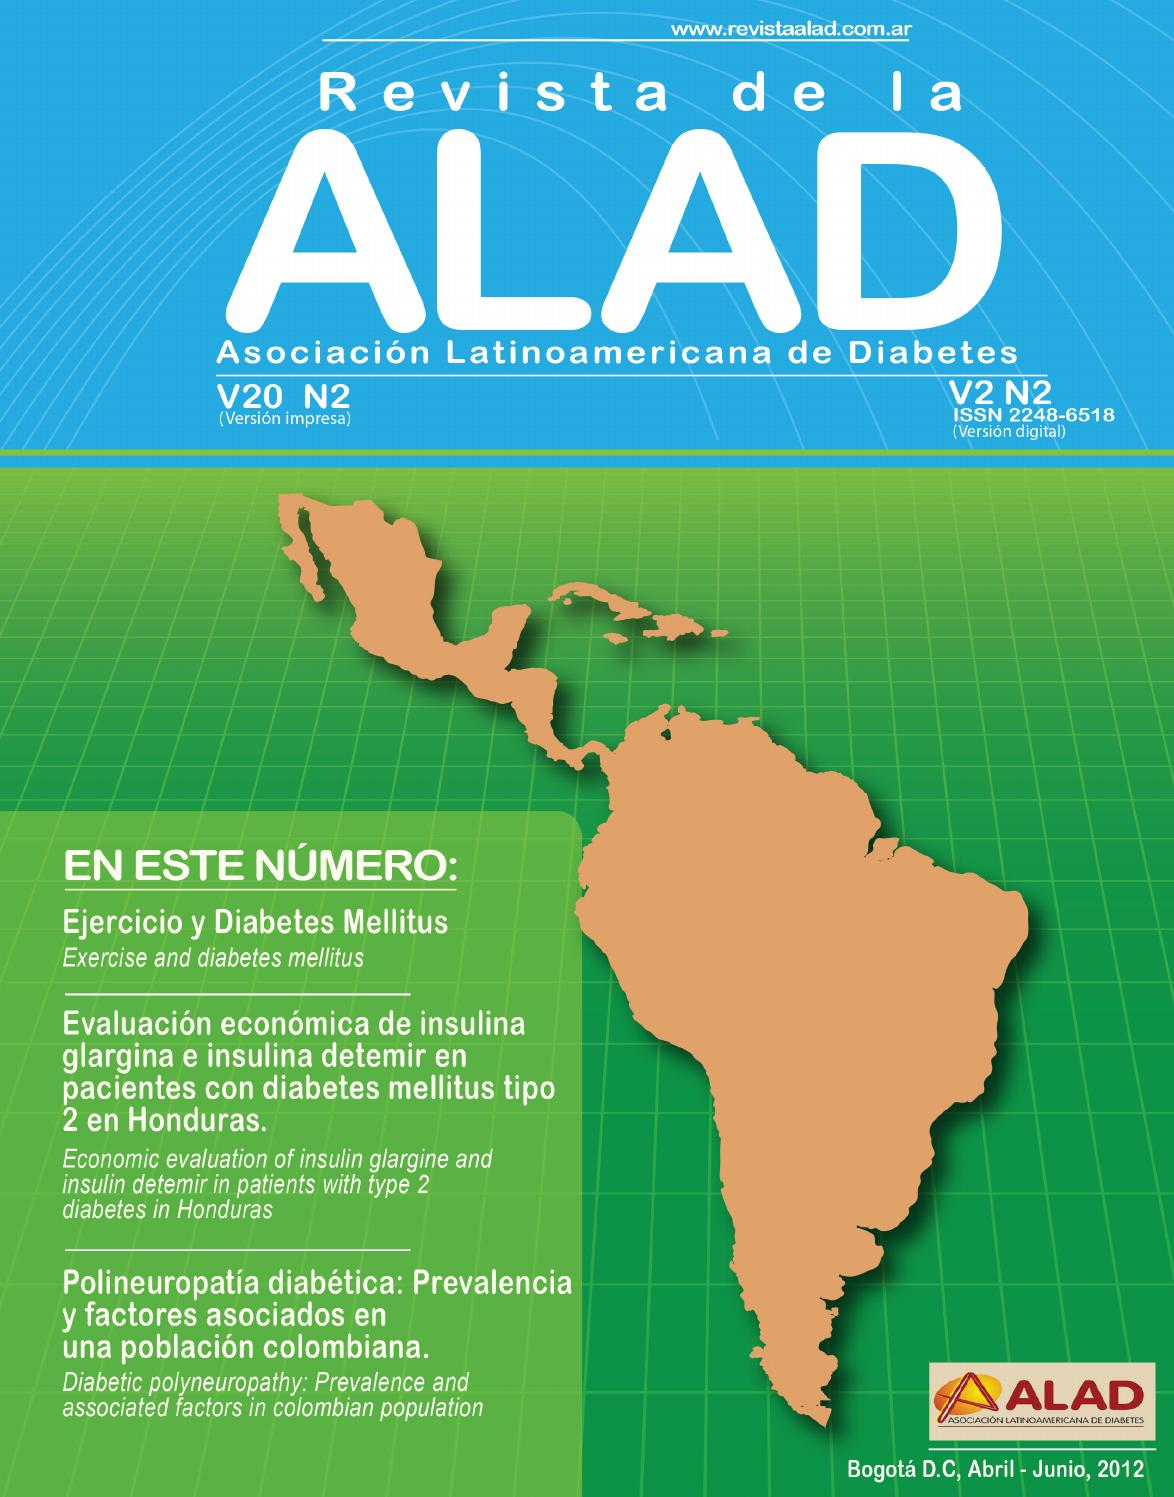 a24f382f3 Revista de la ALAD V2N2 by Asociacion Latinoamericana de Diabetes - issuu